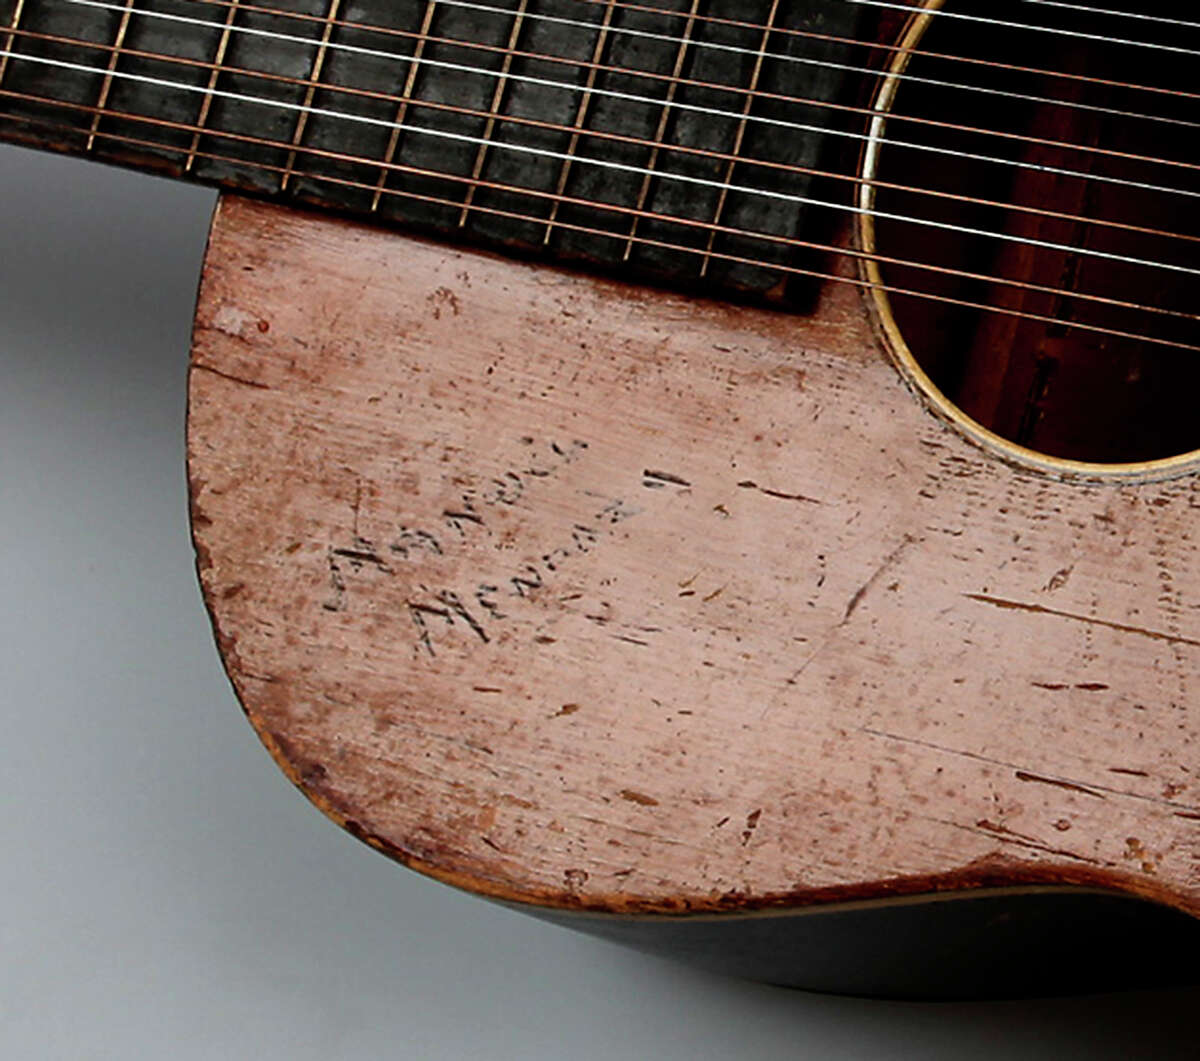 A name - Manuel Mendoza - is carved into the top of Mireles' guitar. Manuel Mendoza was singer Lydia Mendoza's brother, who was also a musician.